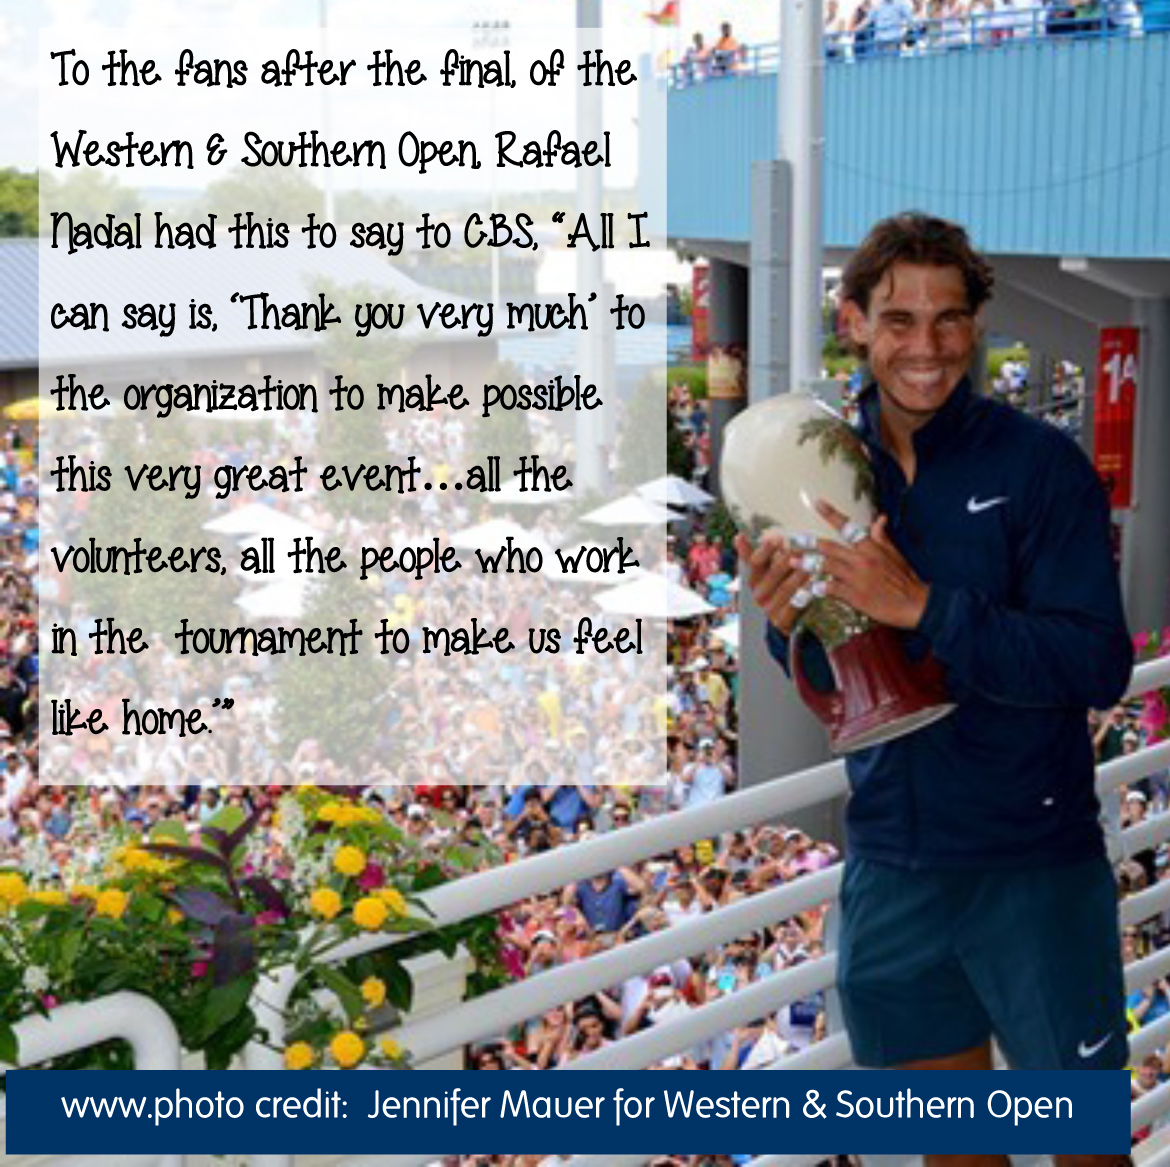 Rafael Nadal quote from Western & Southern Open tennis tournament in Mason, Ohio